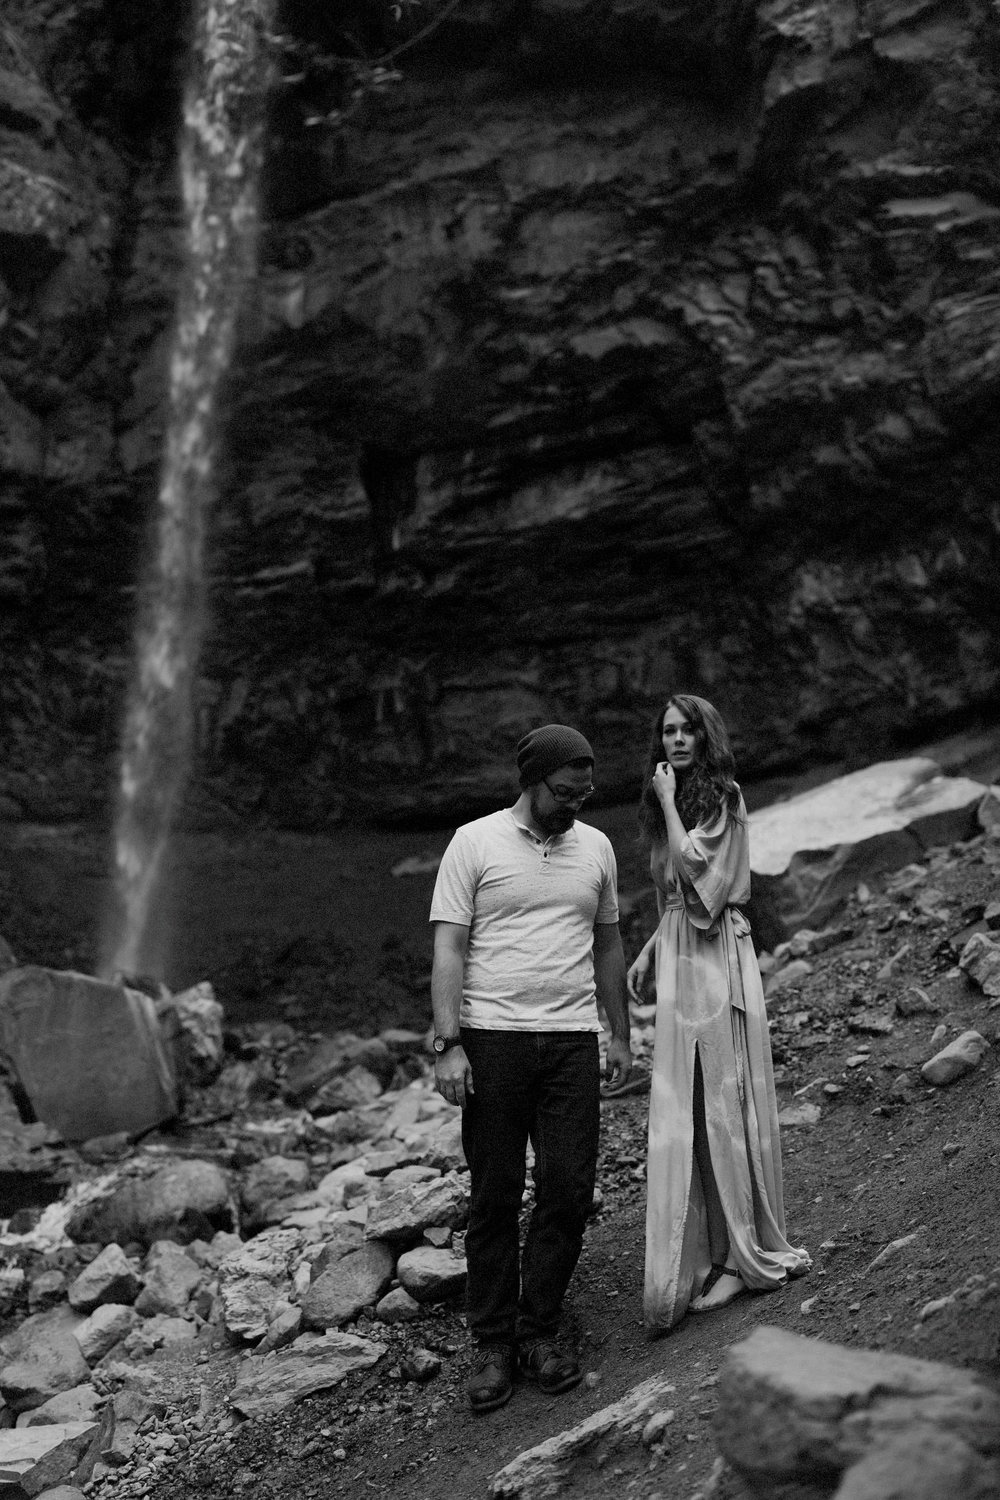 cornet-falls-telluride-adventure-session-23.jpg